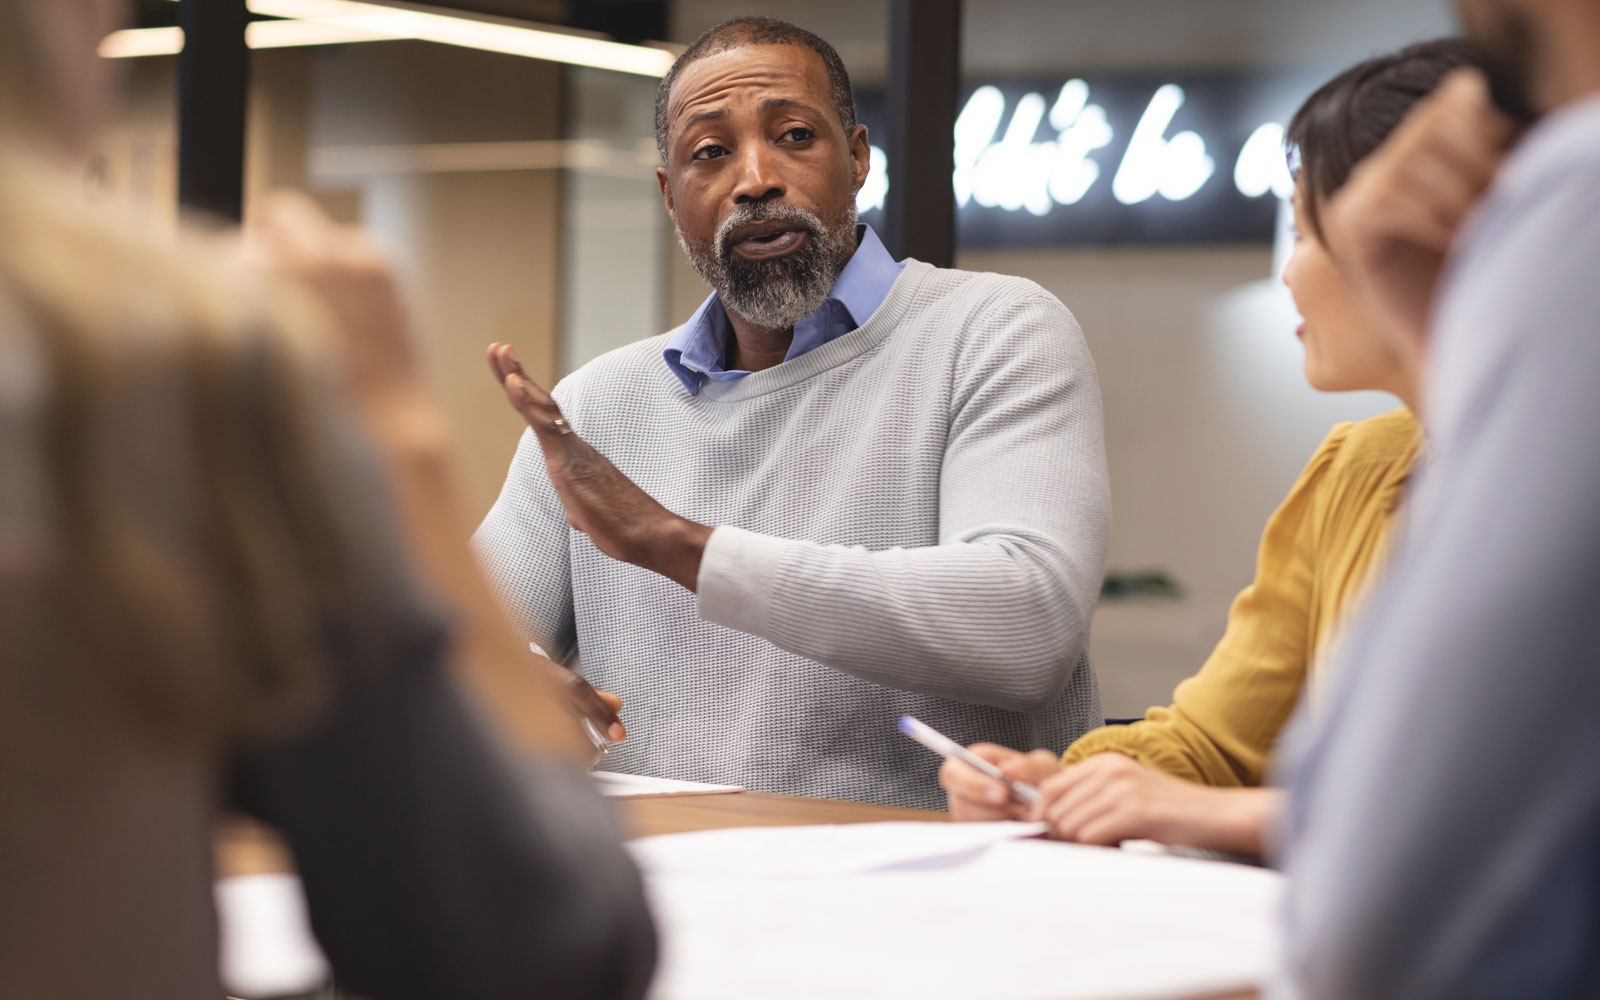 mature man at conference table with coworkers